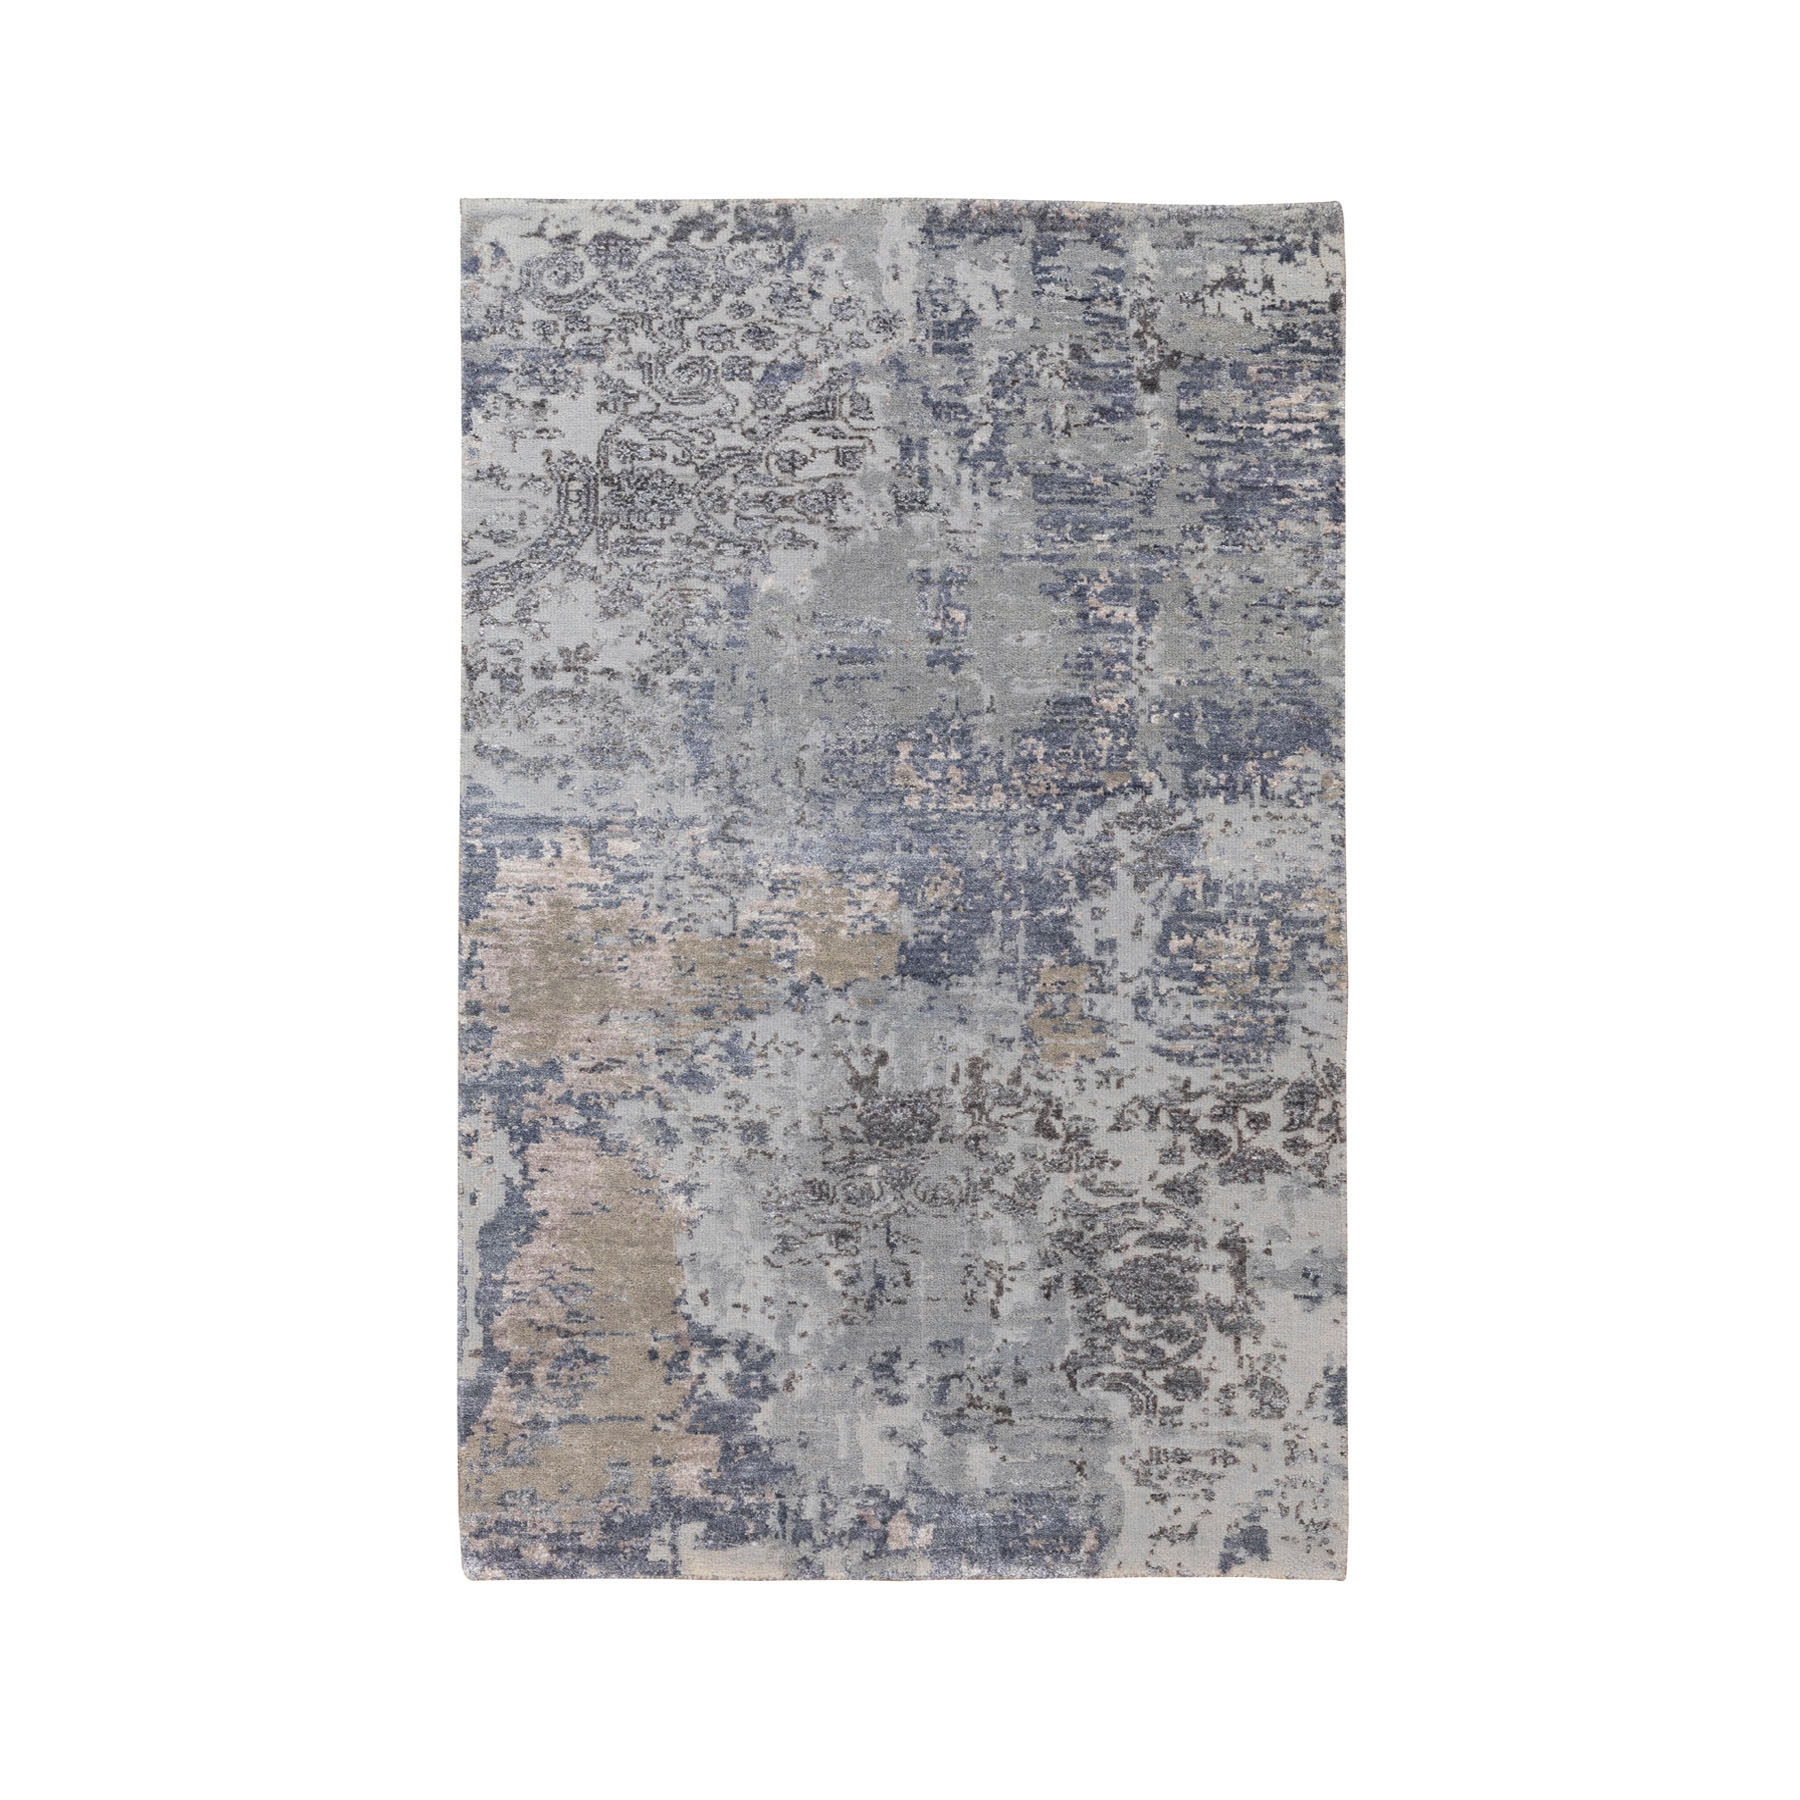 3'x5' Gray Erased Design Wool And Silk Runner Hand Knotted Oriental Rug